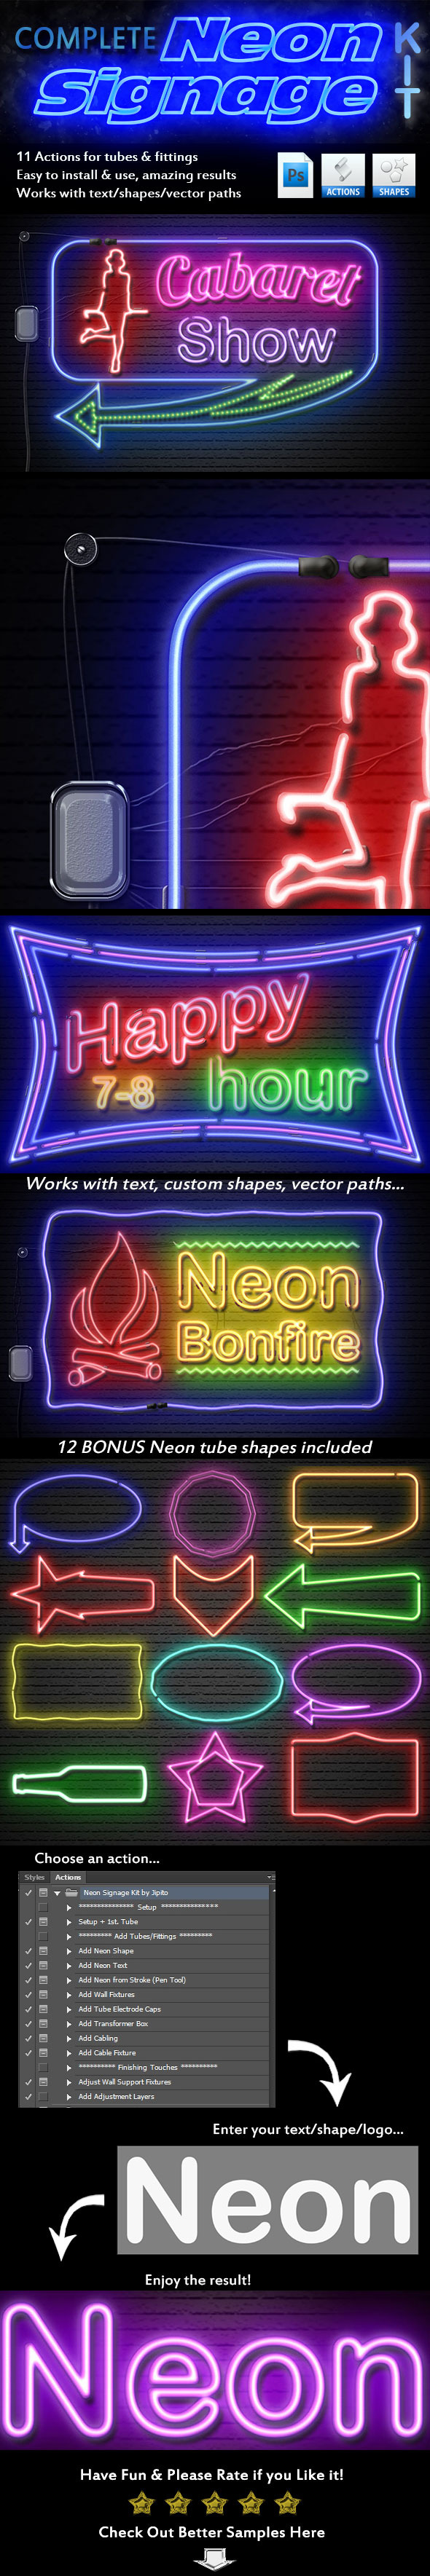 Complete Neon Signage Kit